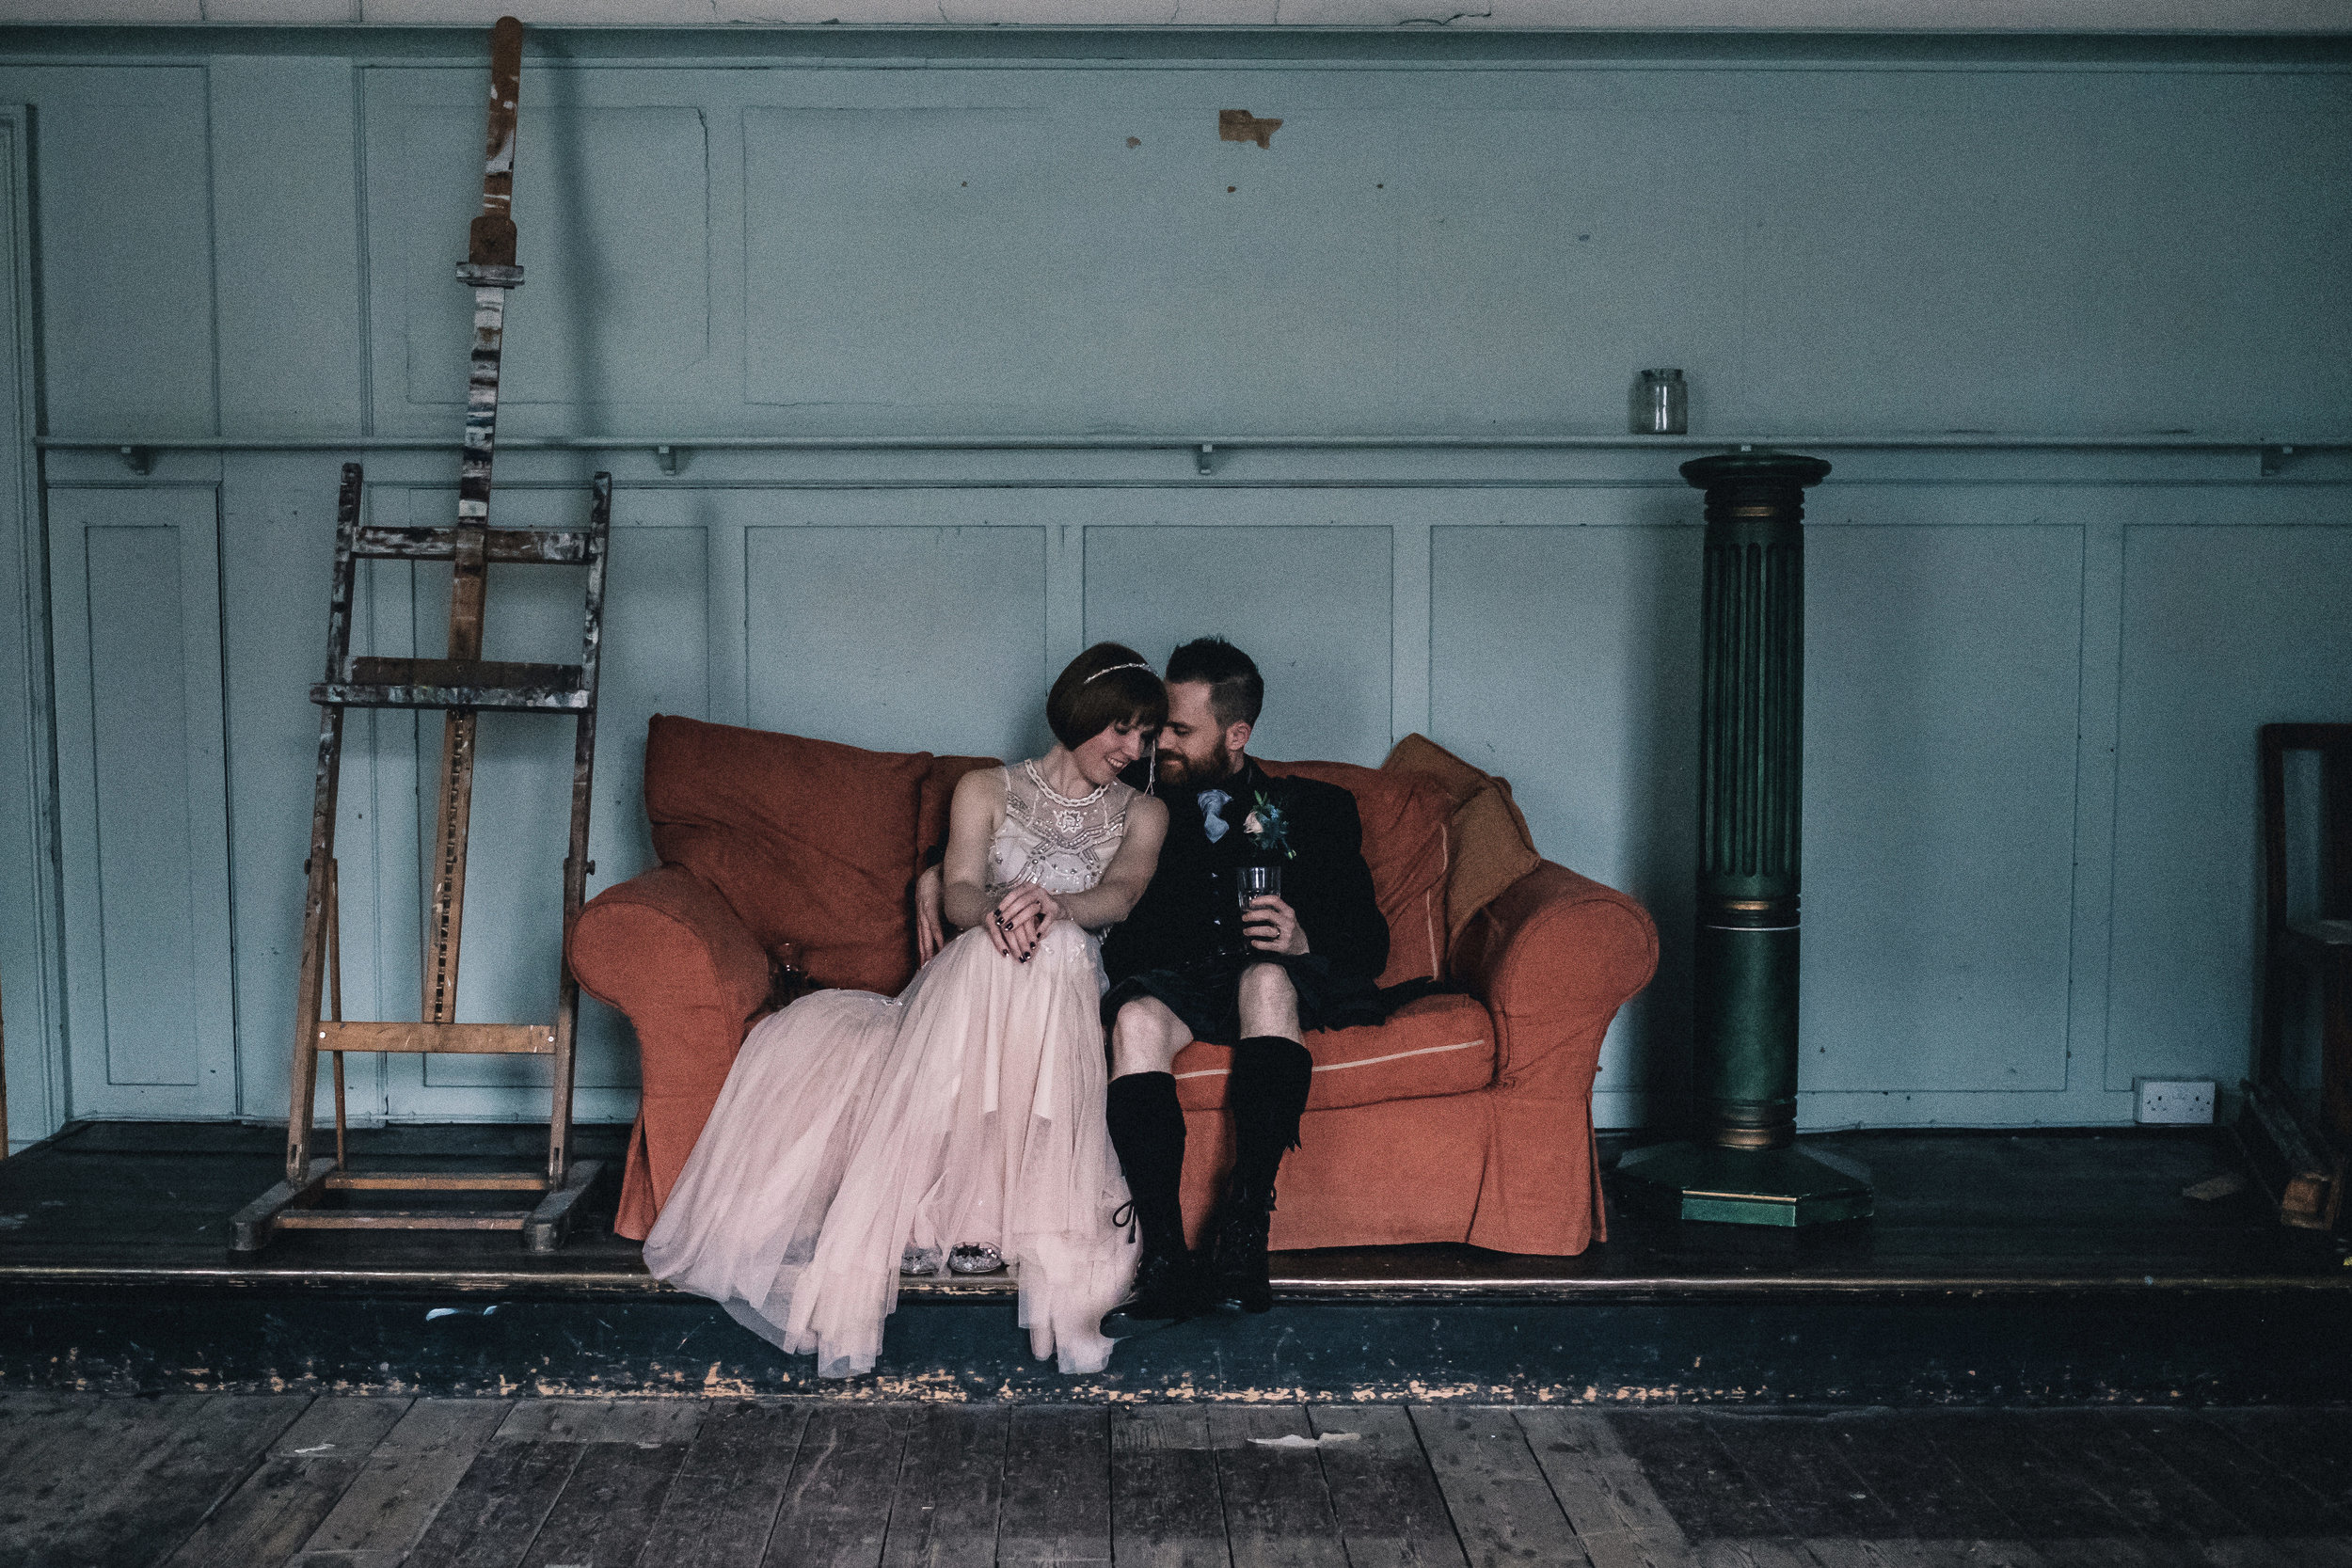 Bride and groom sit close on a sofa